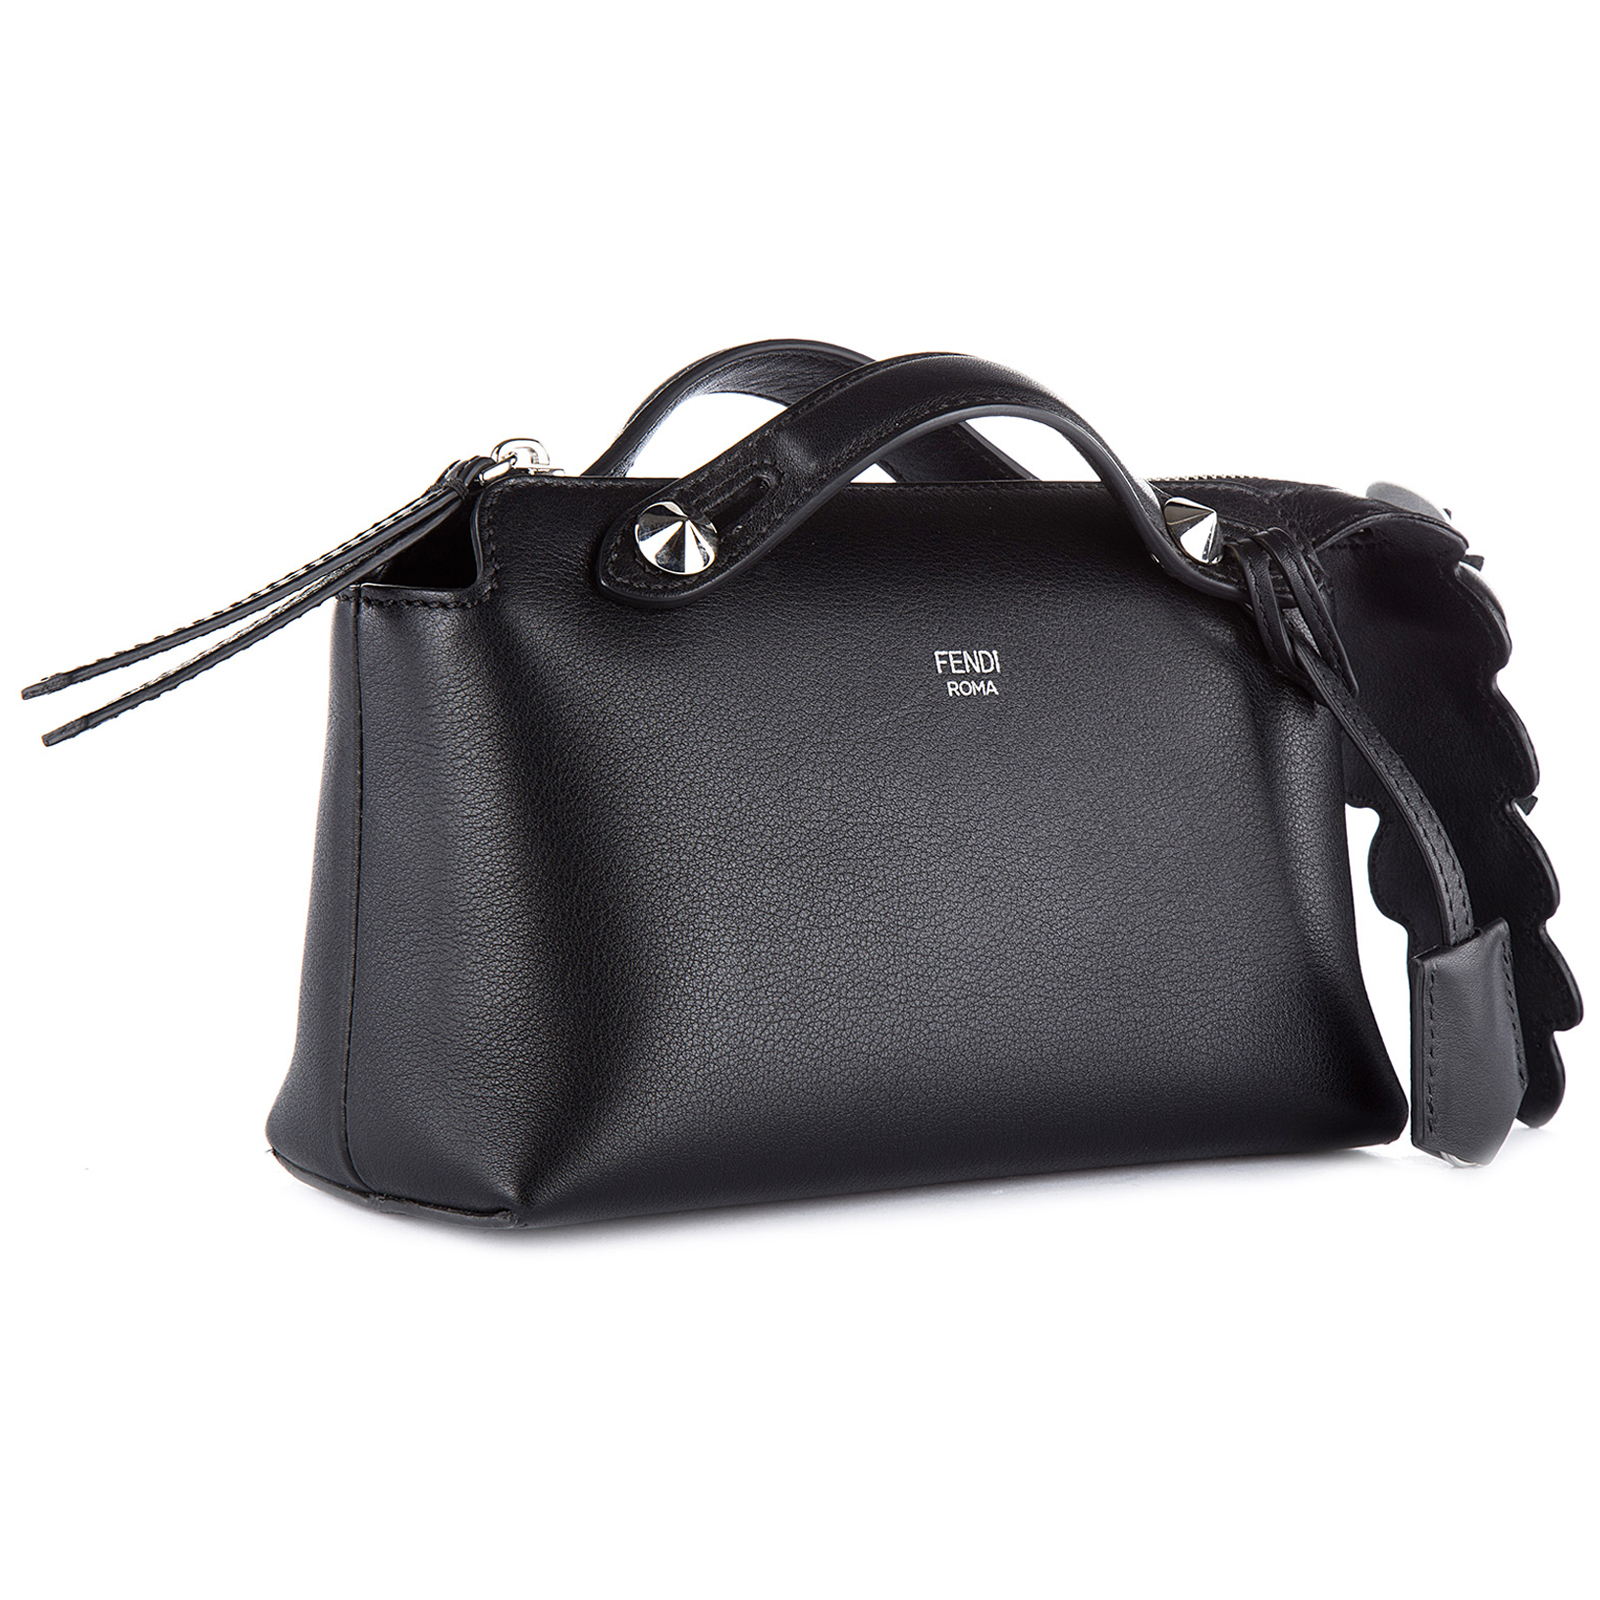 ... Borsa donna a mano shopping in pelle by the way mini ... 5b575ff9265